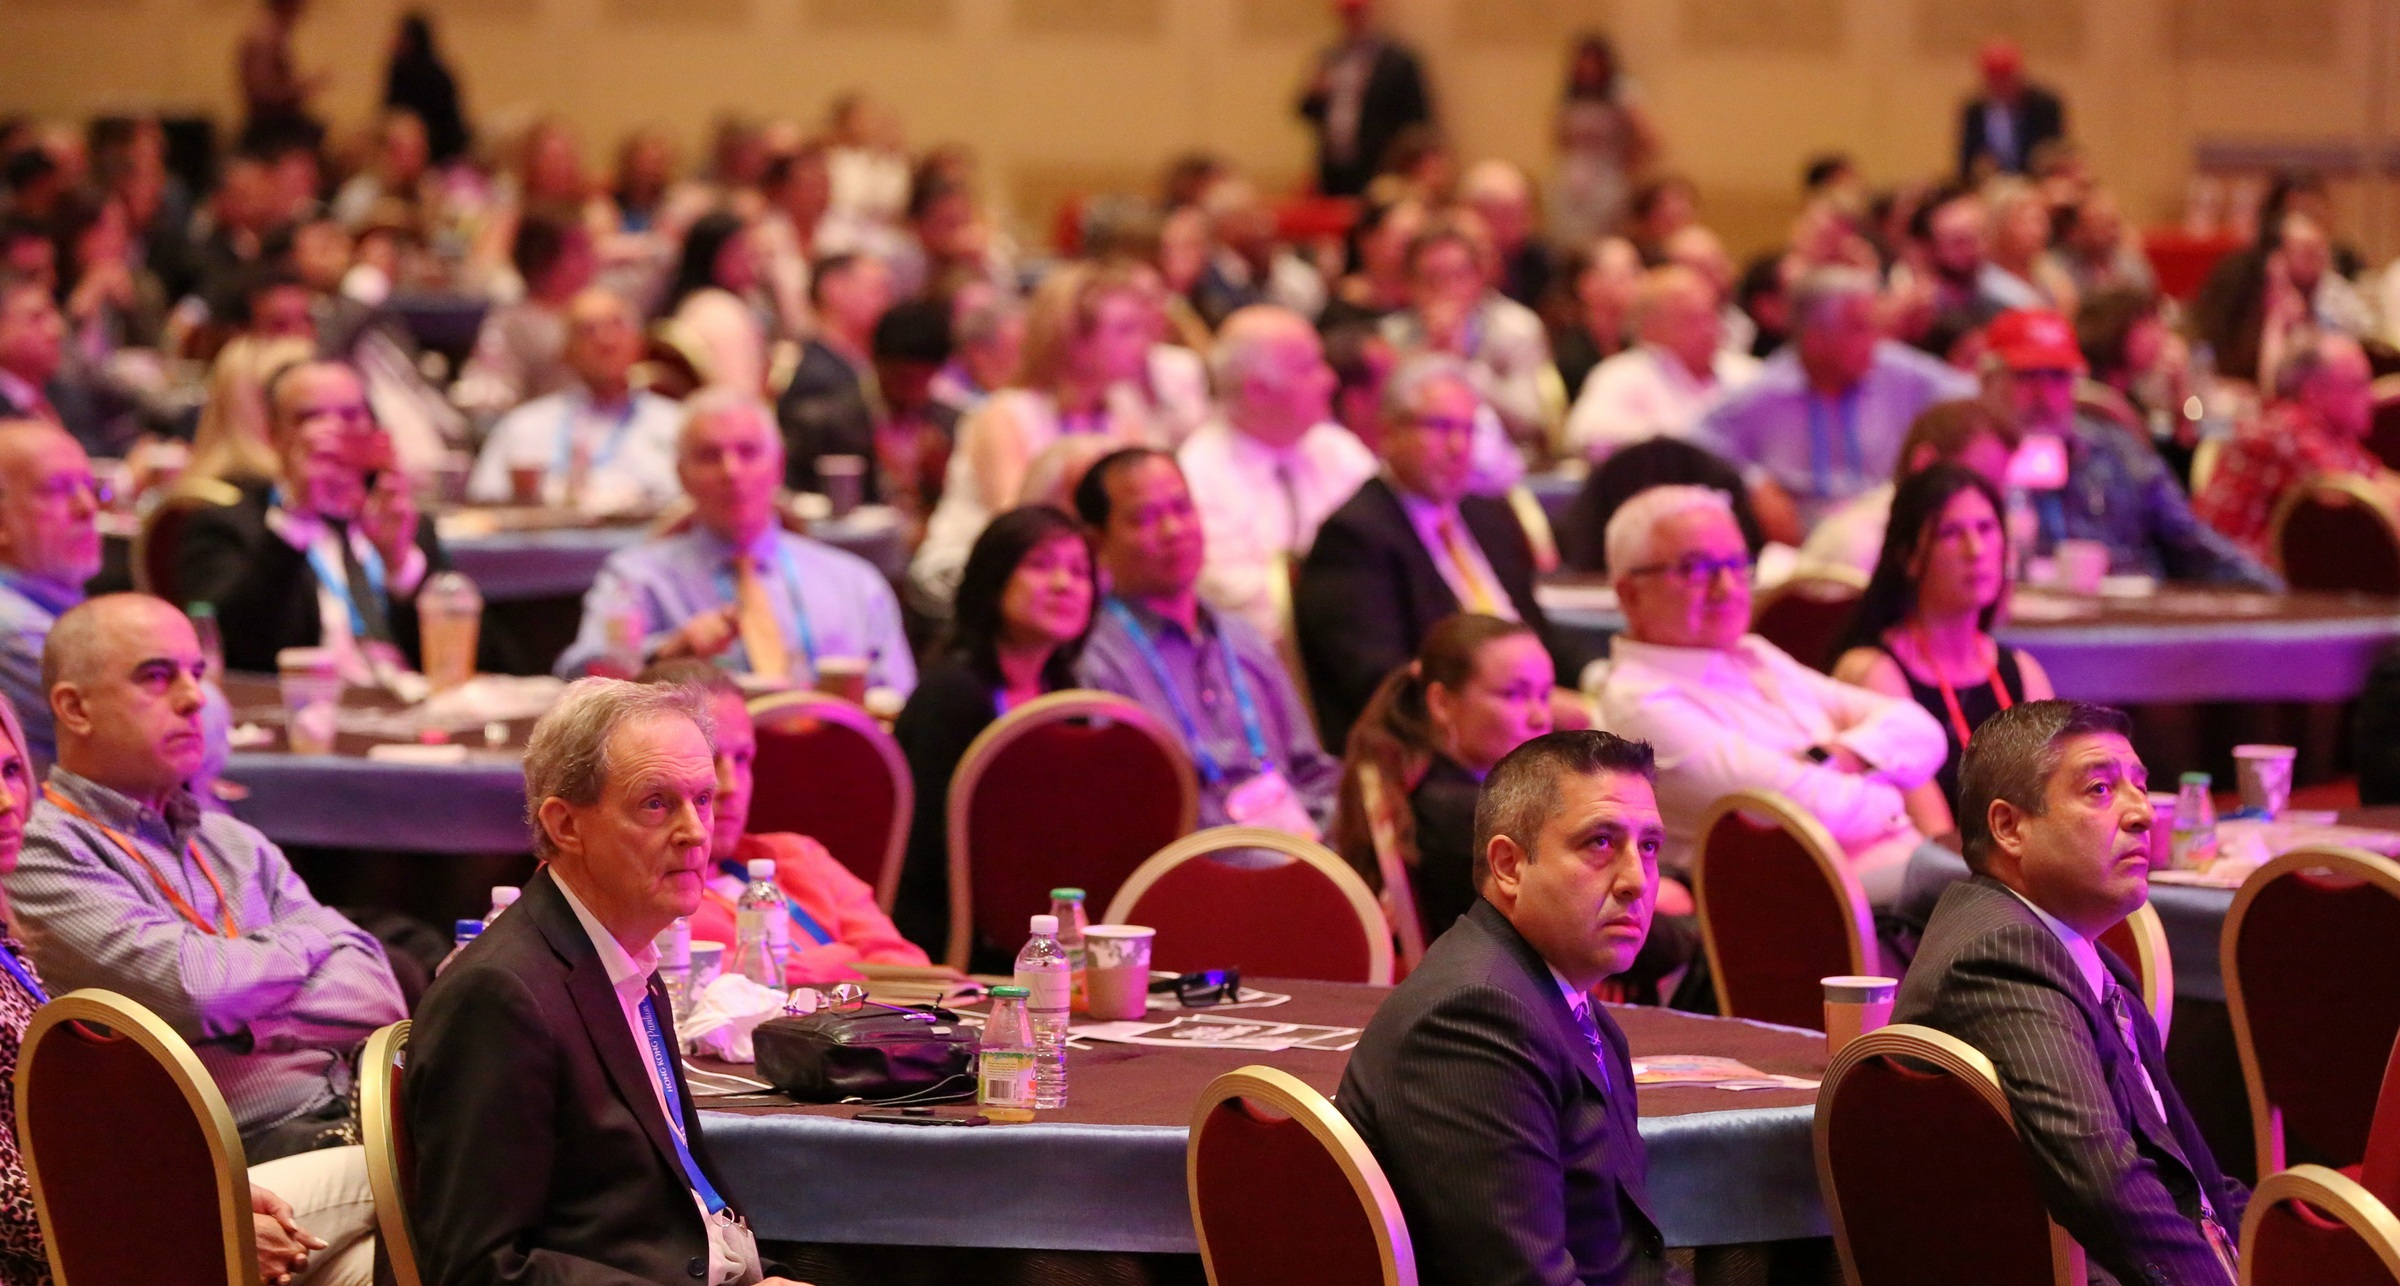 The Rapaport Breakfast attracts 800 of the Best and the Brightest